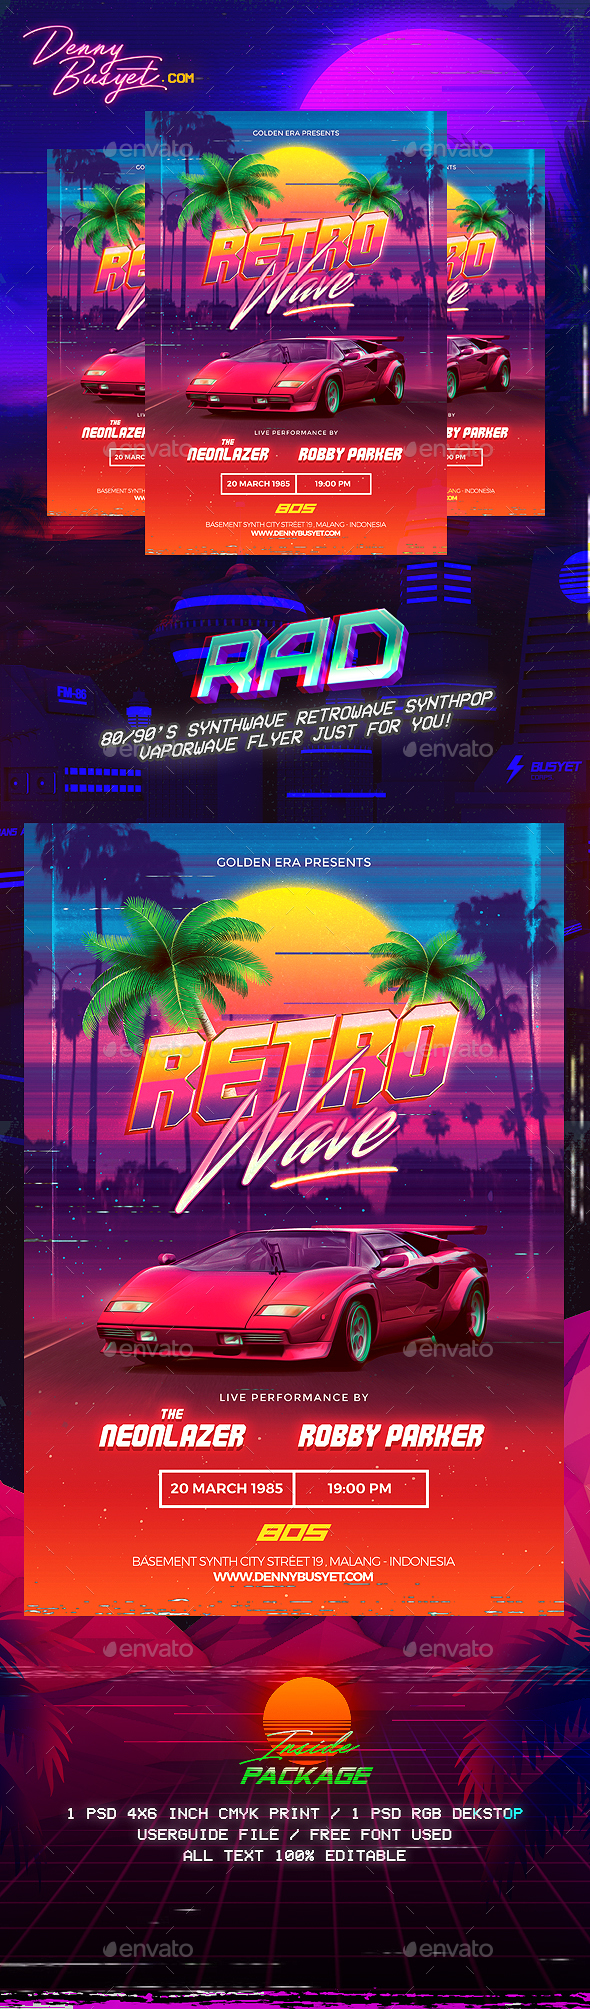 Retrowave 80's Synthwave Flyer - Events Flyers